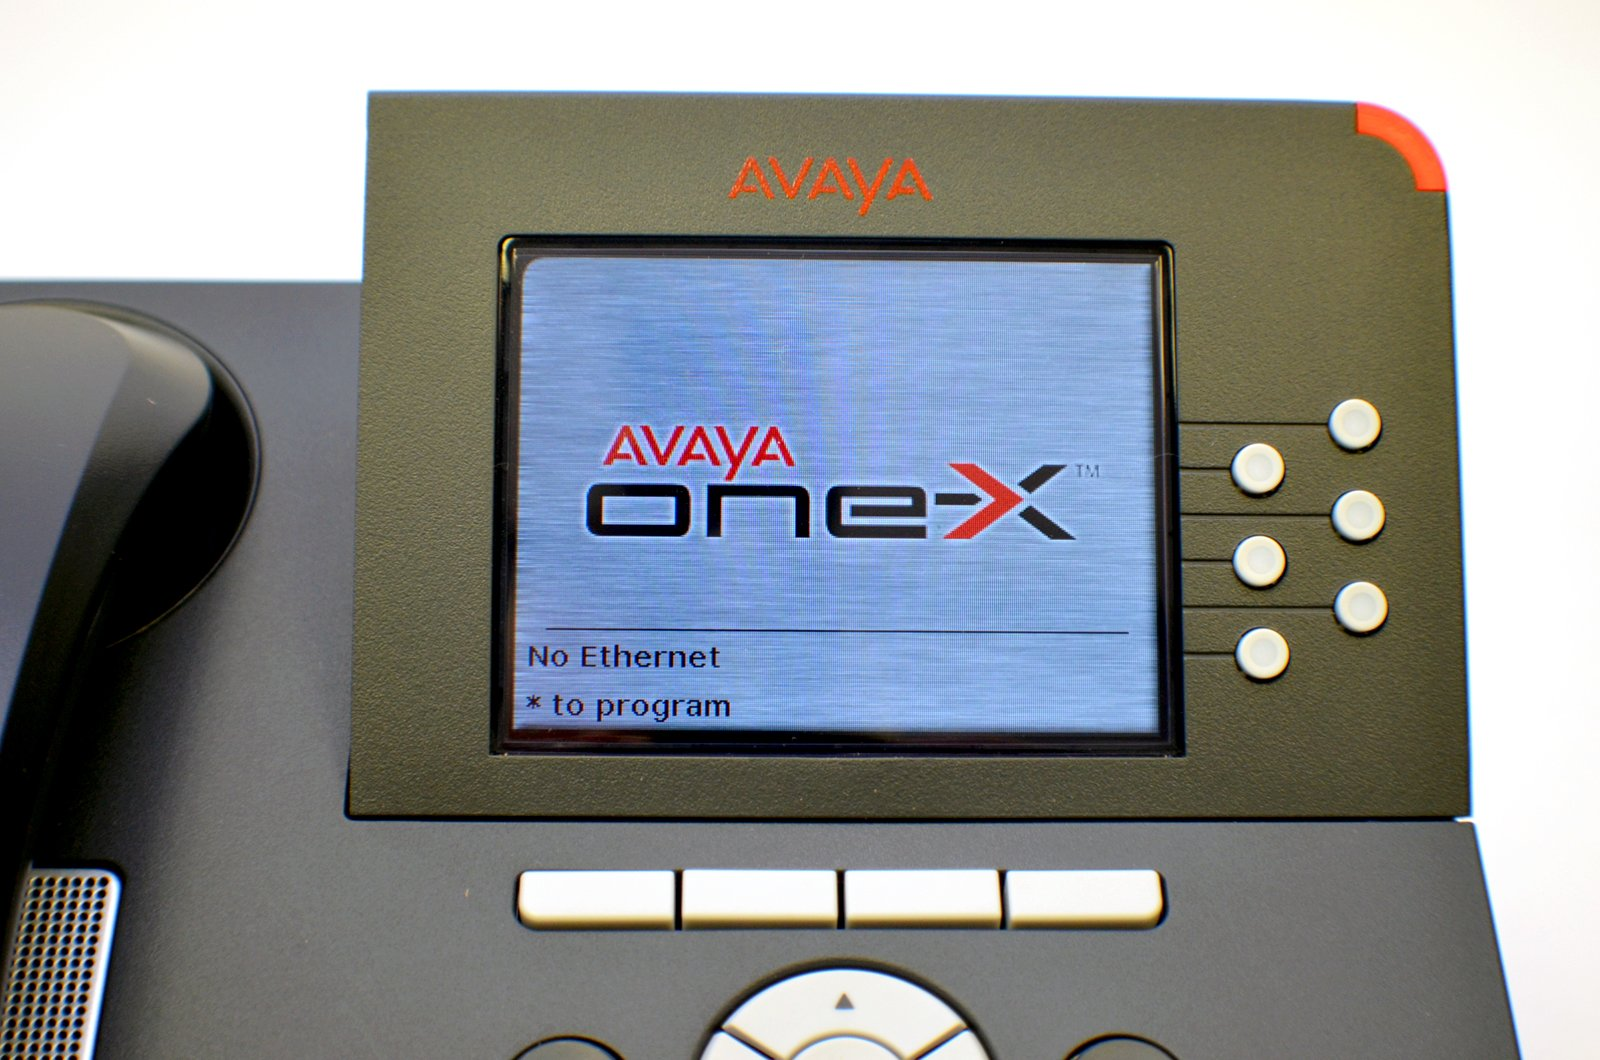 New Avaya VOIP POE IP Deskphone One-X SIP H.323 9640 Phone Telephone 700383920 9600 Series Digital Color LCD Screen Set Kit Assembly w/ Stand USB Ethernet RJ45 by Avaya (Image #6)